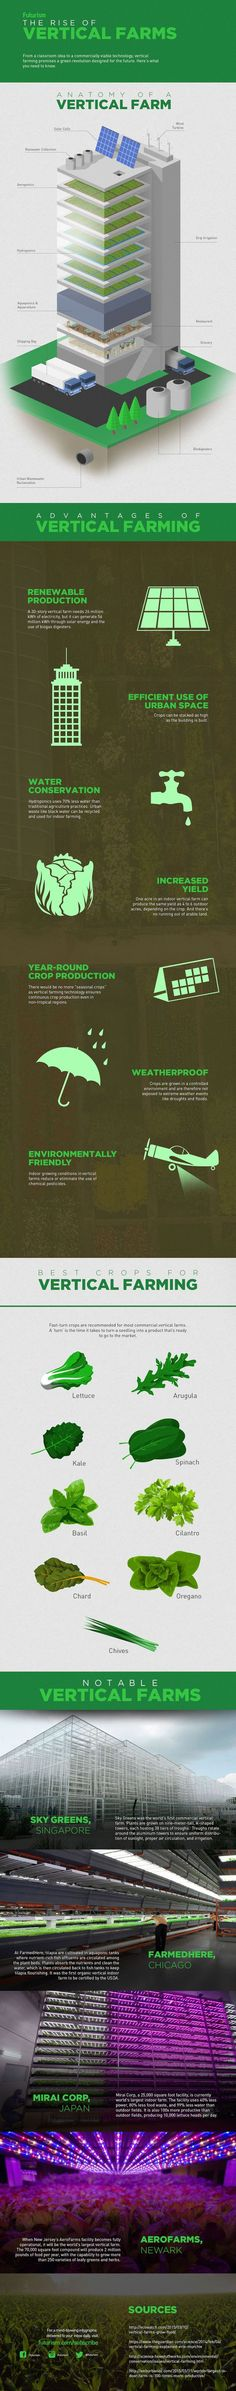 Check out Vertical Farming For Compact Spaces   Types of Farming at https://homesteading.com/vertical-farming/